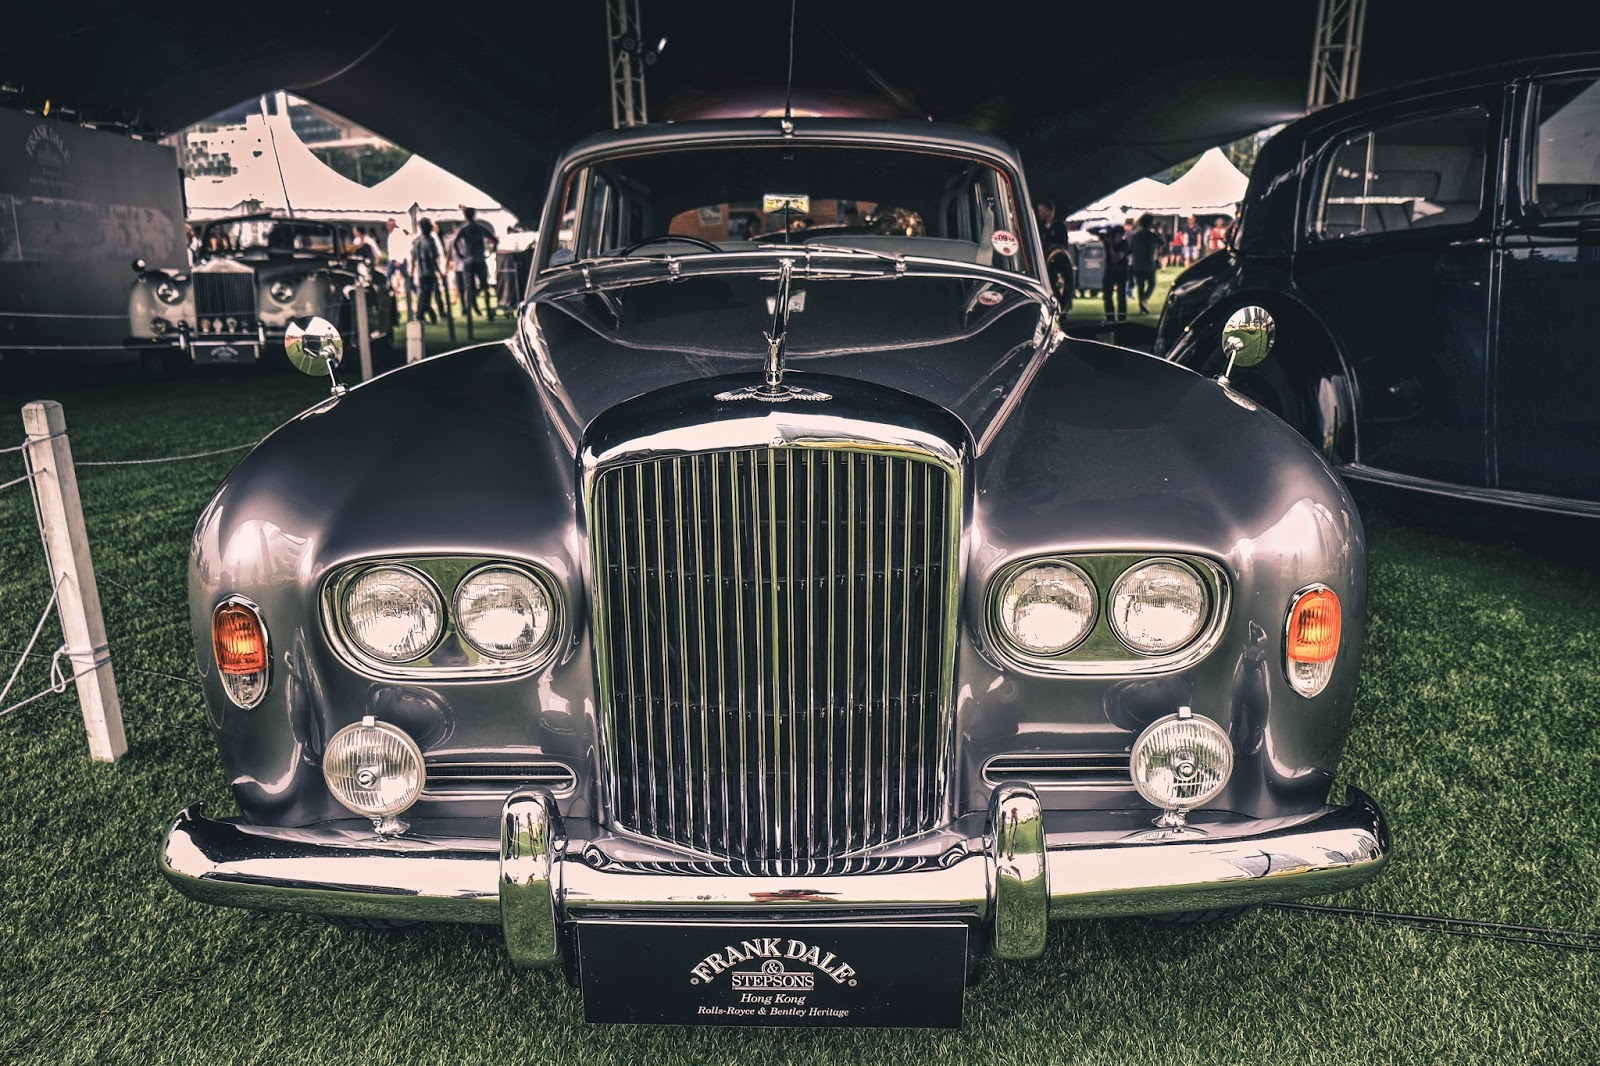 Rolls Royce Phantom V 1963